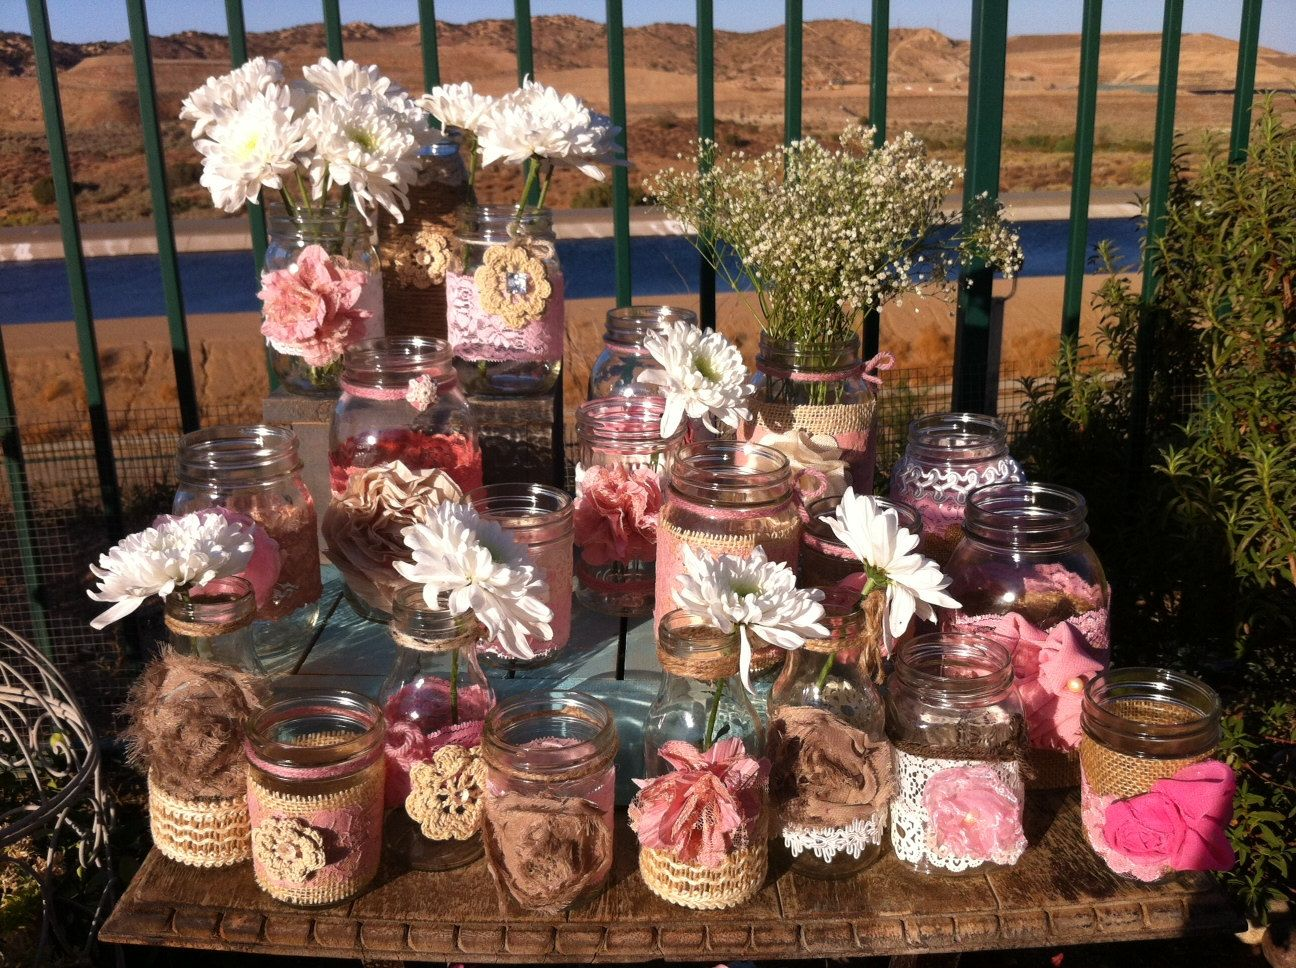 Rustic pink wedding decor 15 bulk burlap lace mason jars lanterns rustic pink wedding decor 15 bulk burlap lace mason jars lanternsvases head junglespirit Choice Image